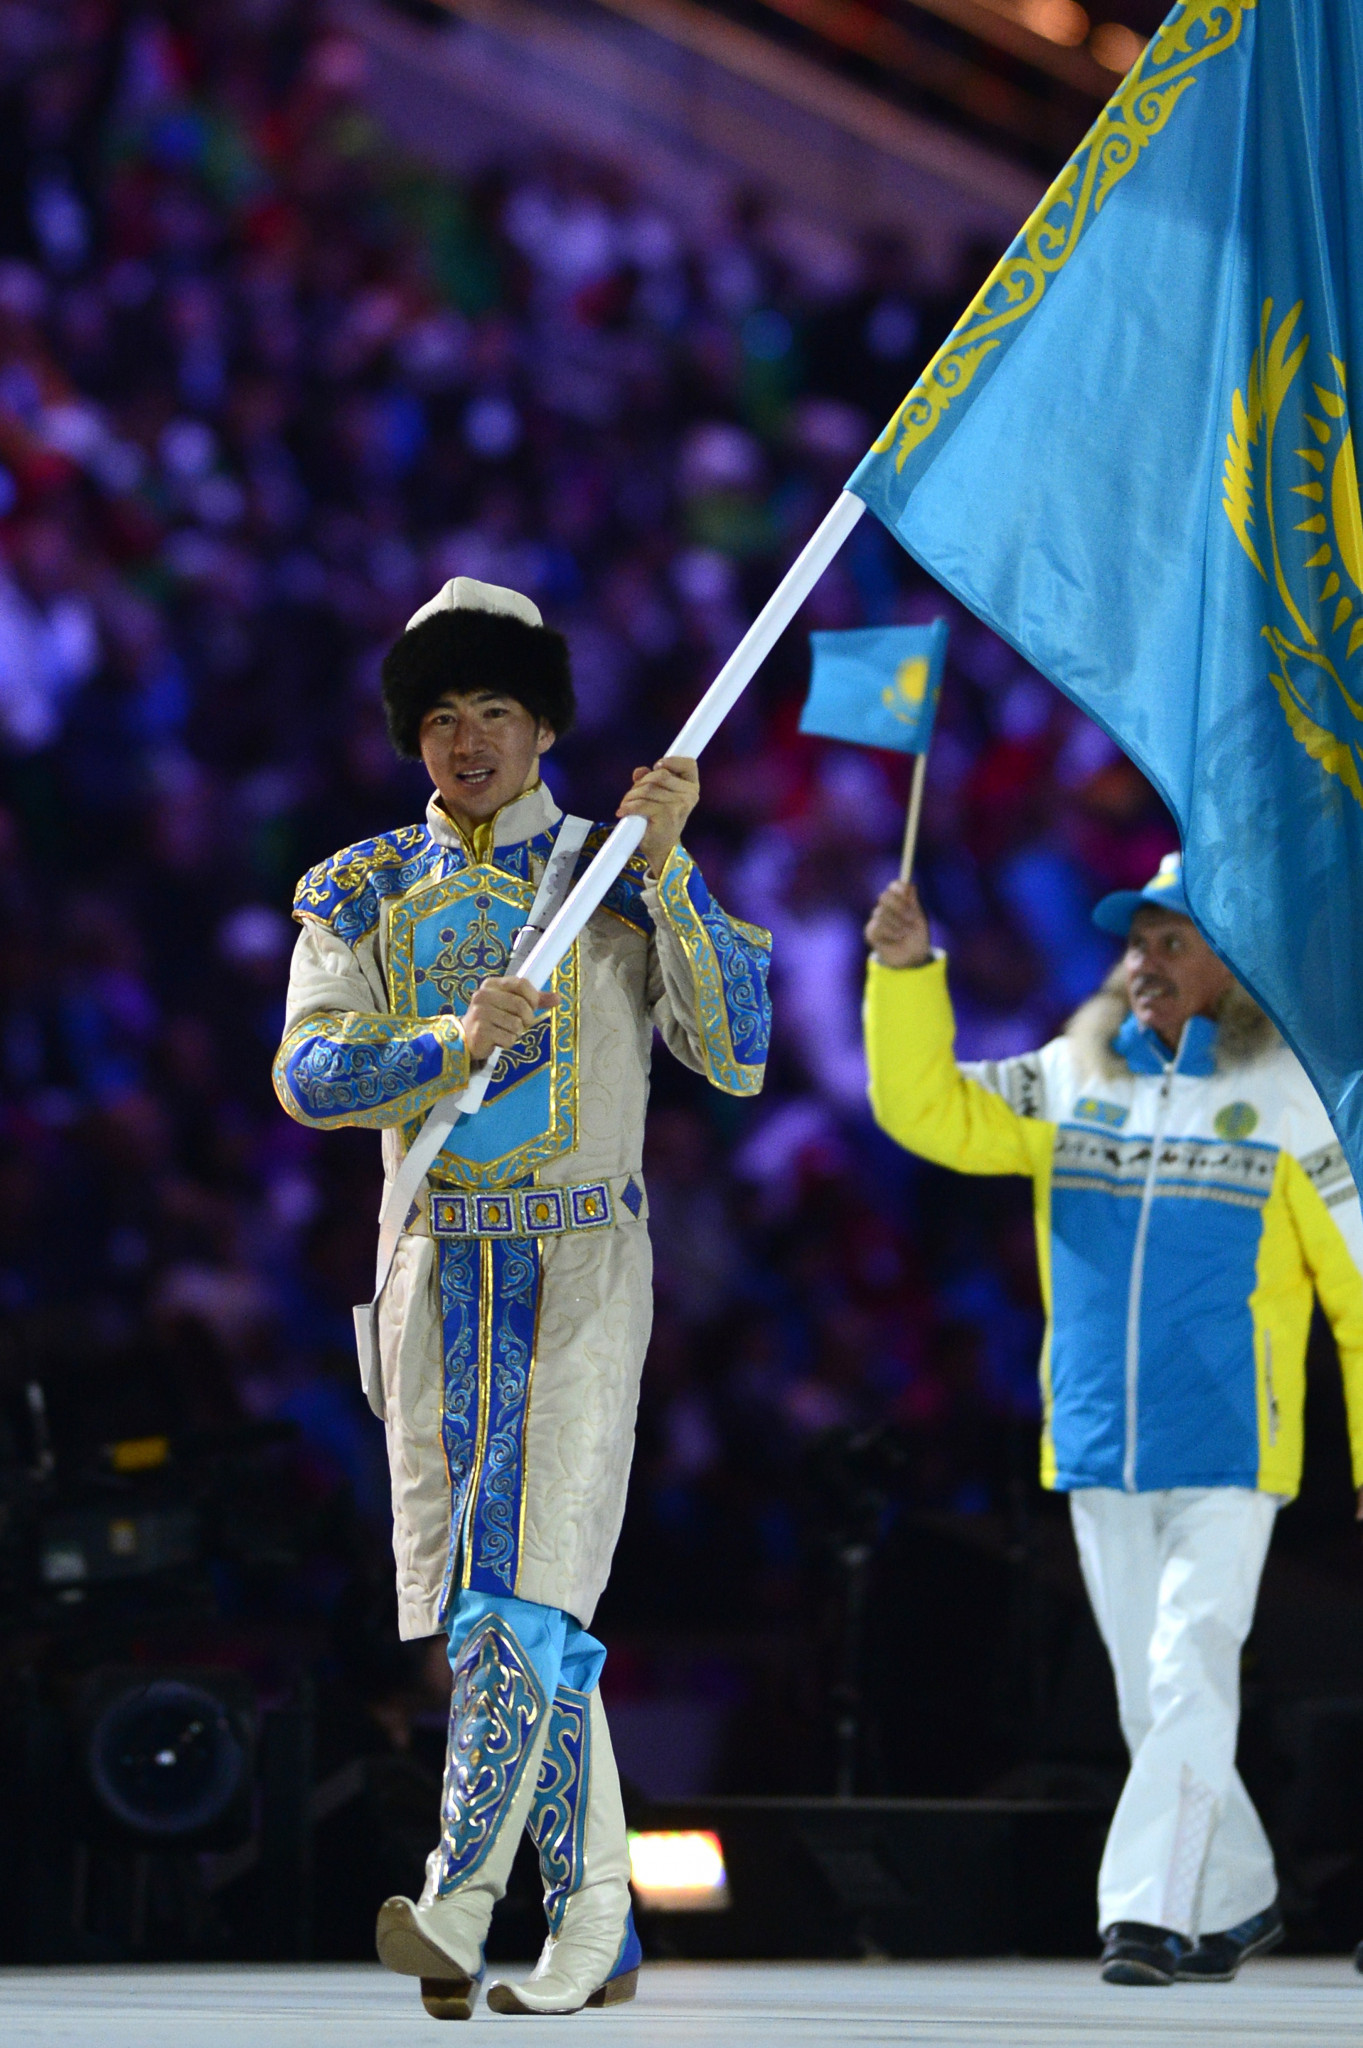 Cross-country skier Yerdos Akhmadiyev carried the Kazakh flag at the Sochi 2014 Opening Ceremony ©Getty Images